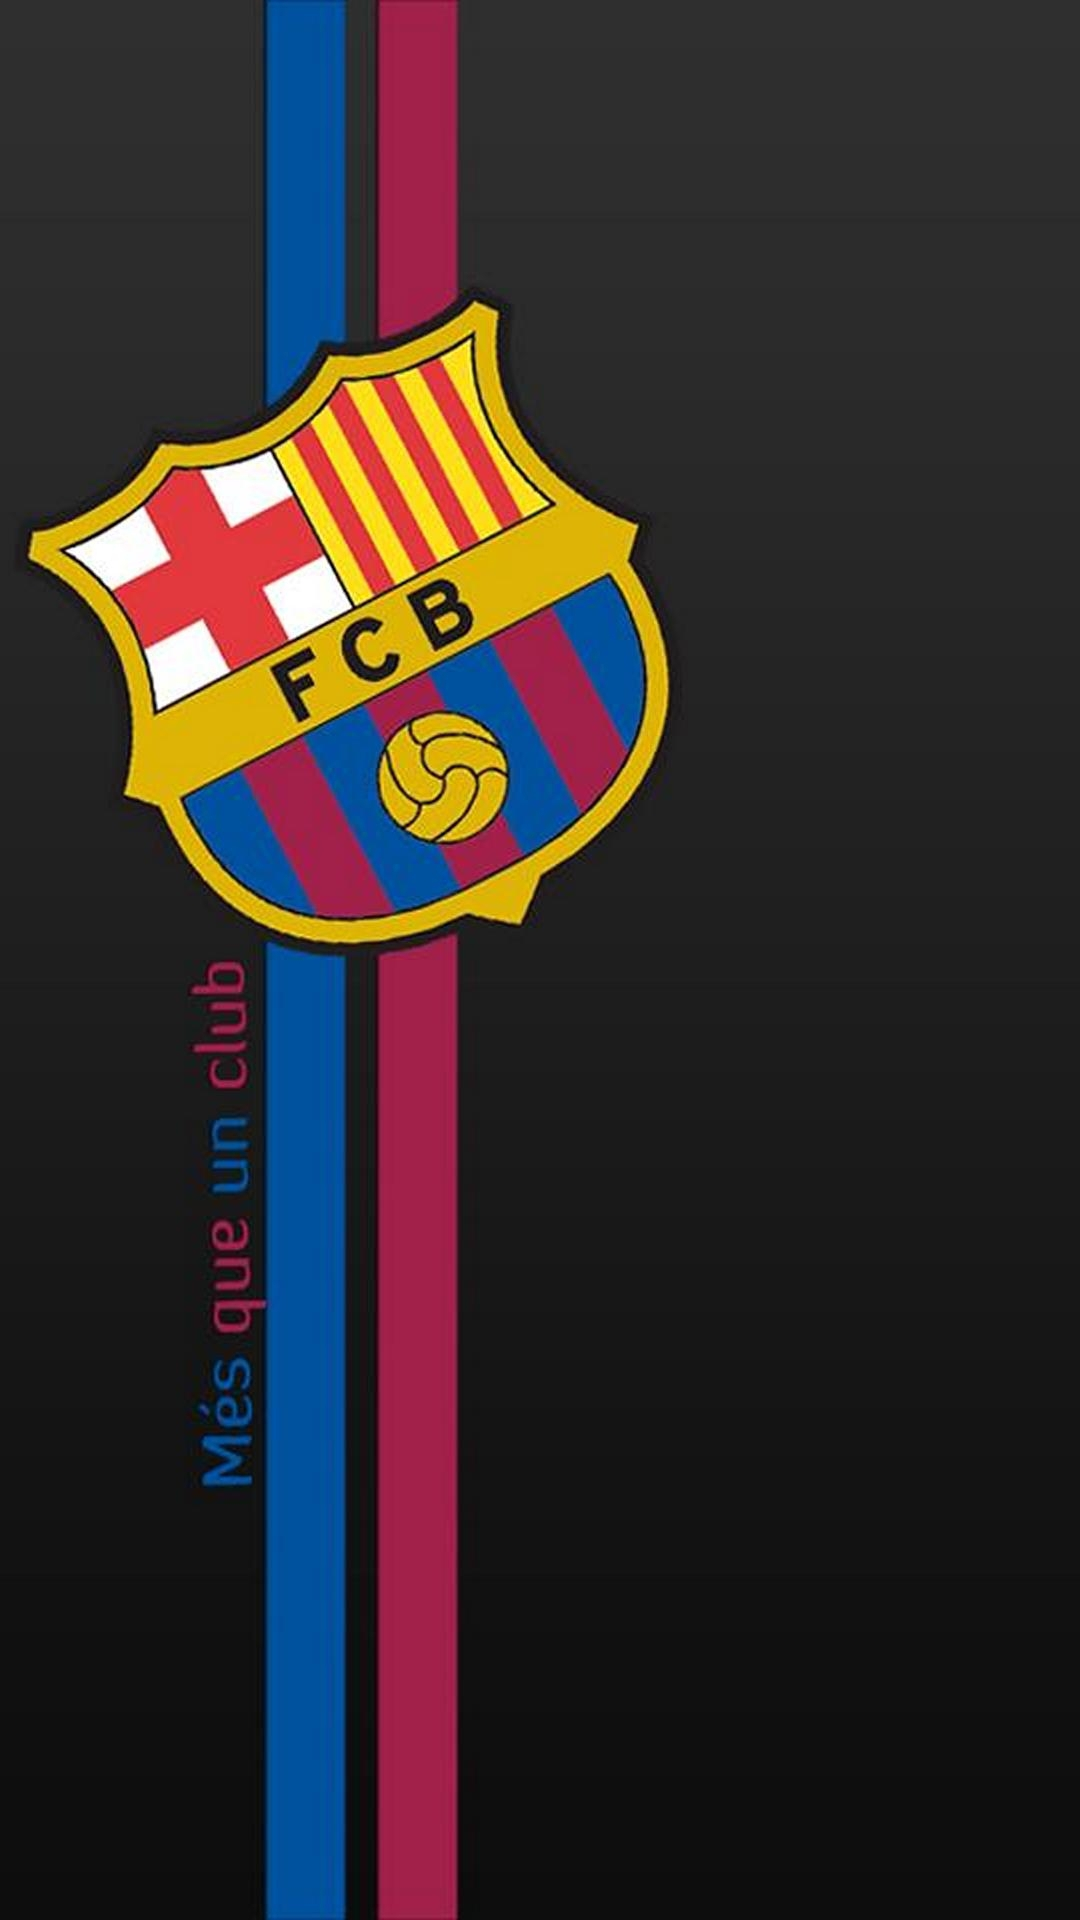 Art Barcelona Logo Iphone 5 1080x1920.